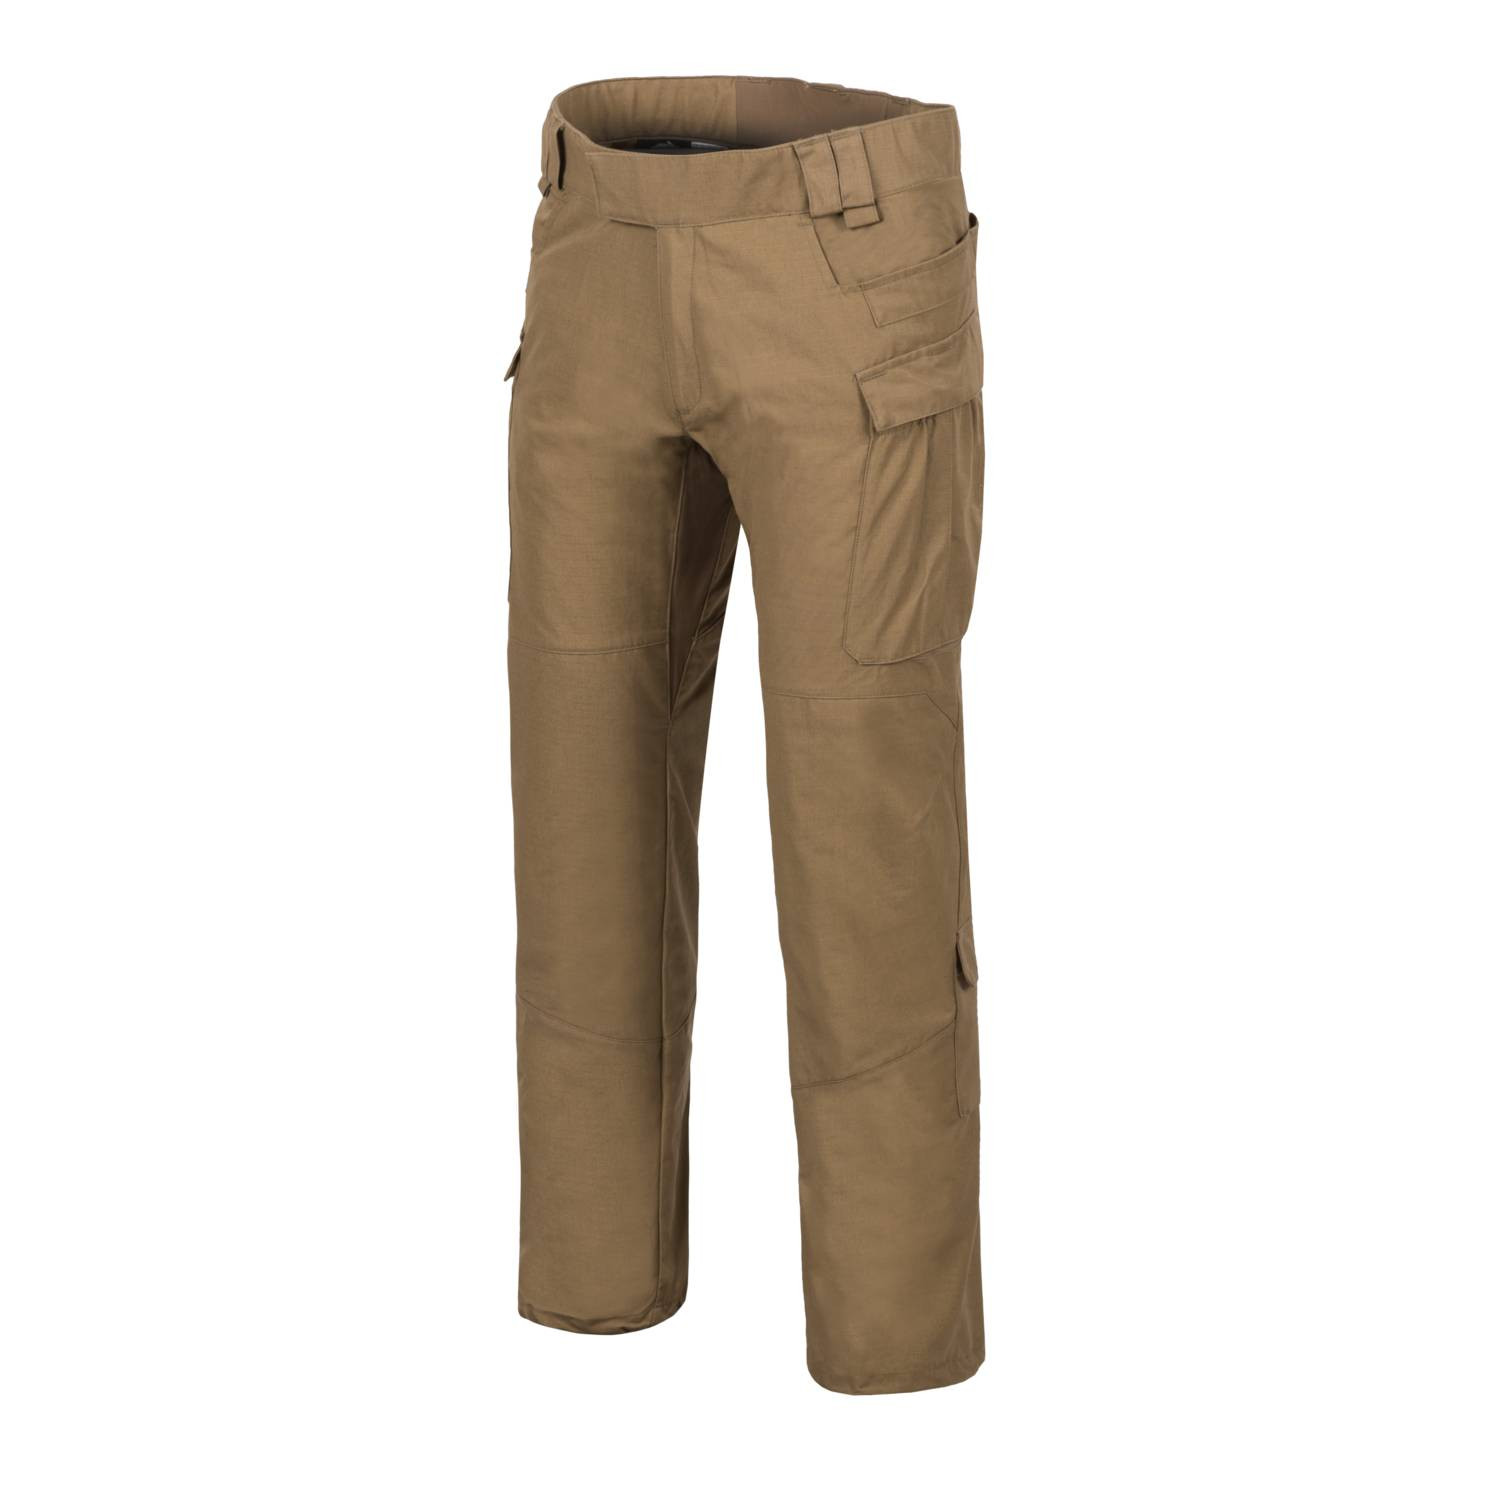 MBDU® Trousers - NyCo Ripstop Detail 2